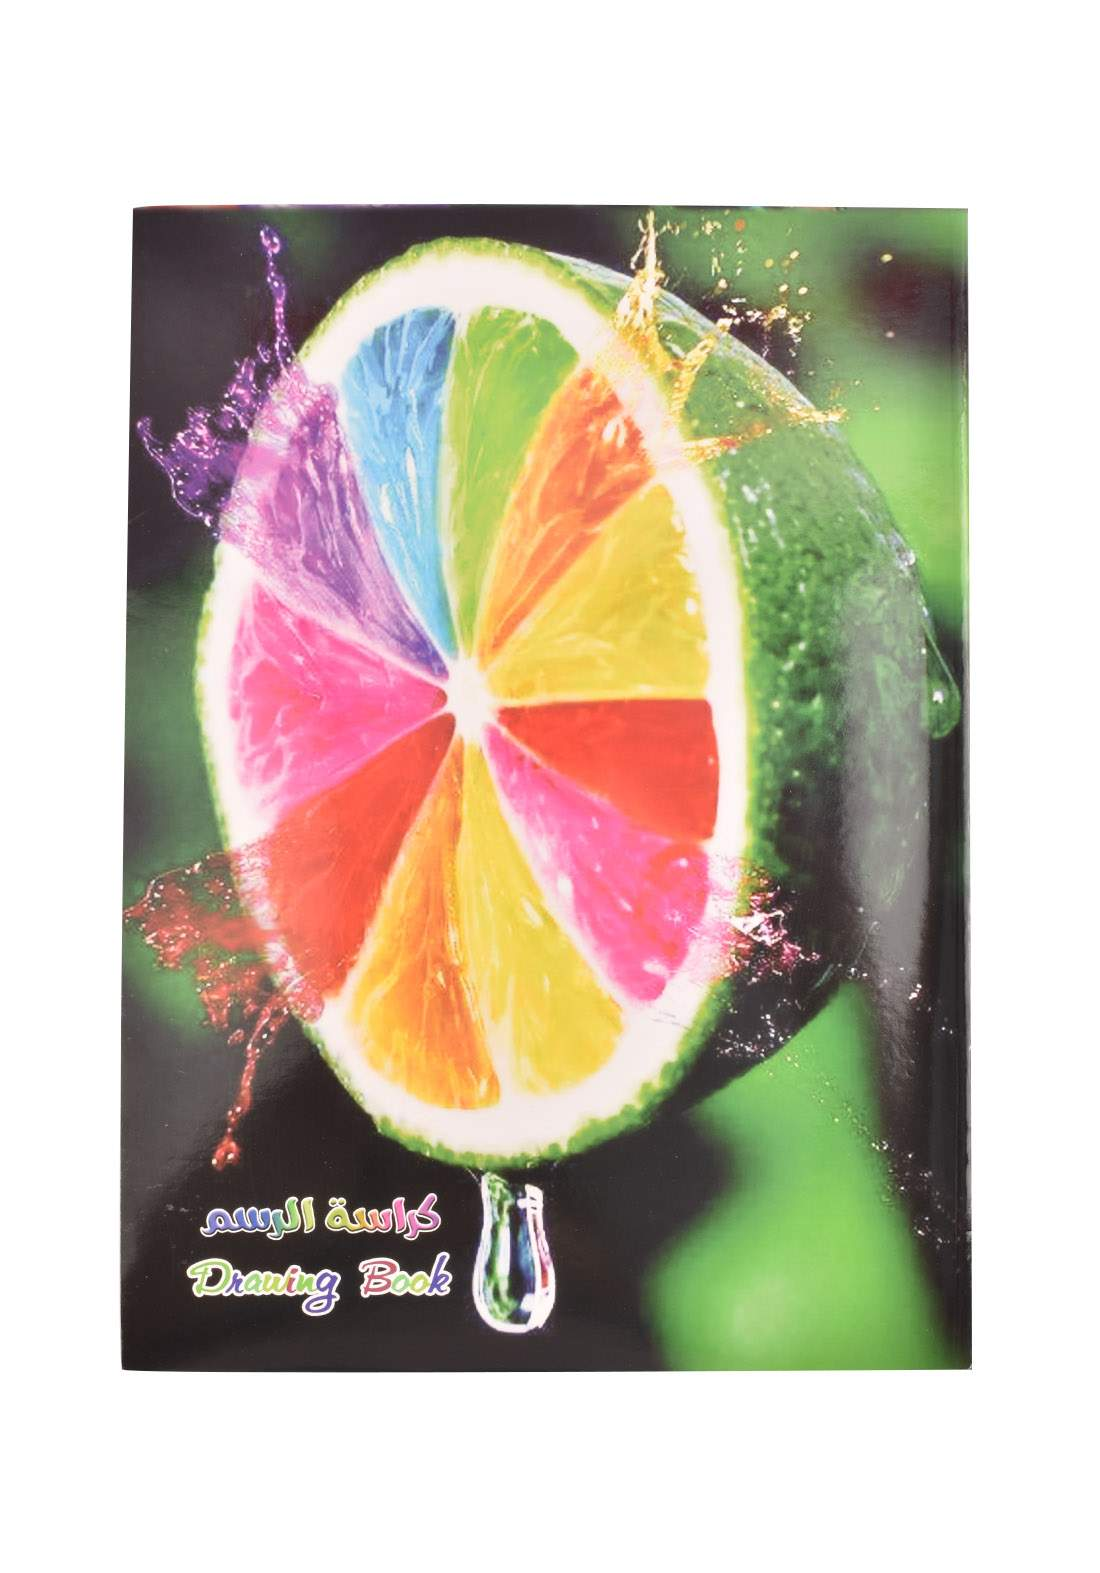 Arabic Drawing Book With A Drawing - Colored Lemon - 100 Sheets دفتر رسم 100 ورقة